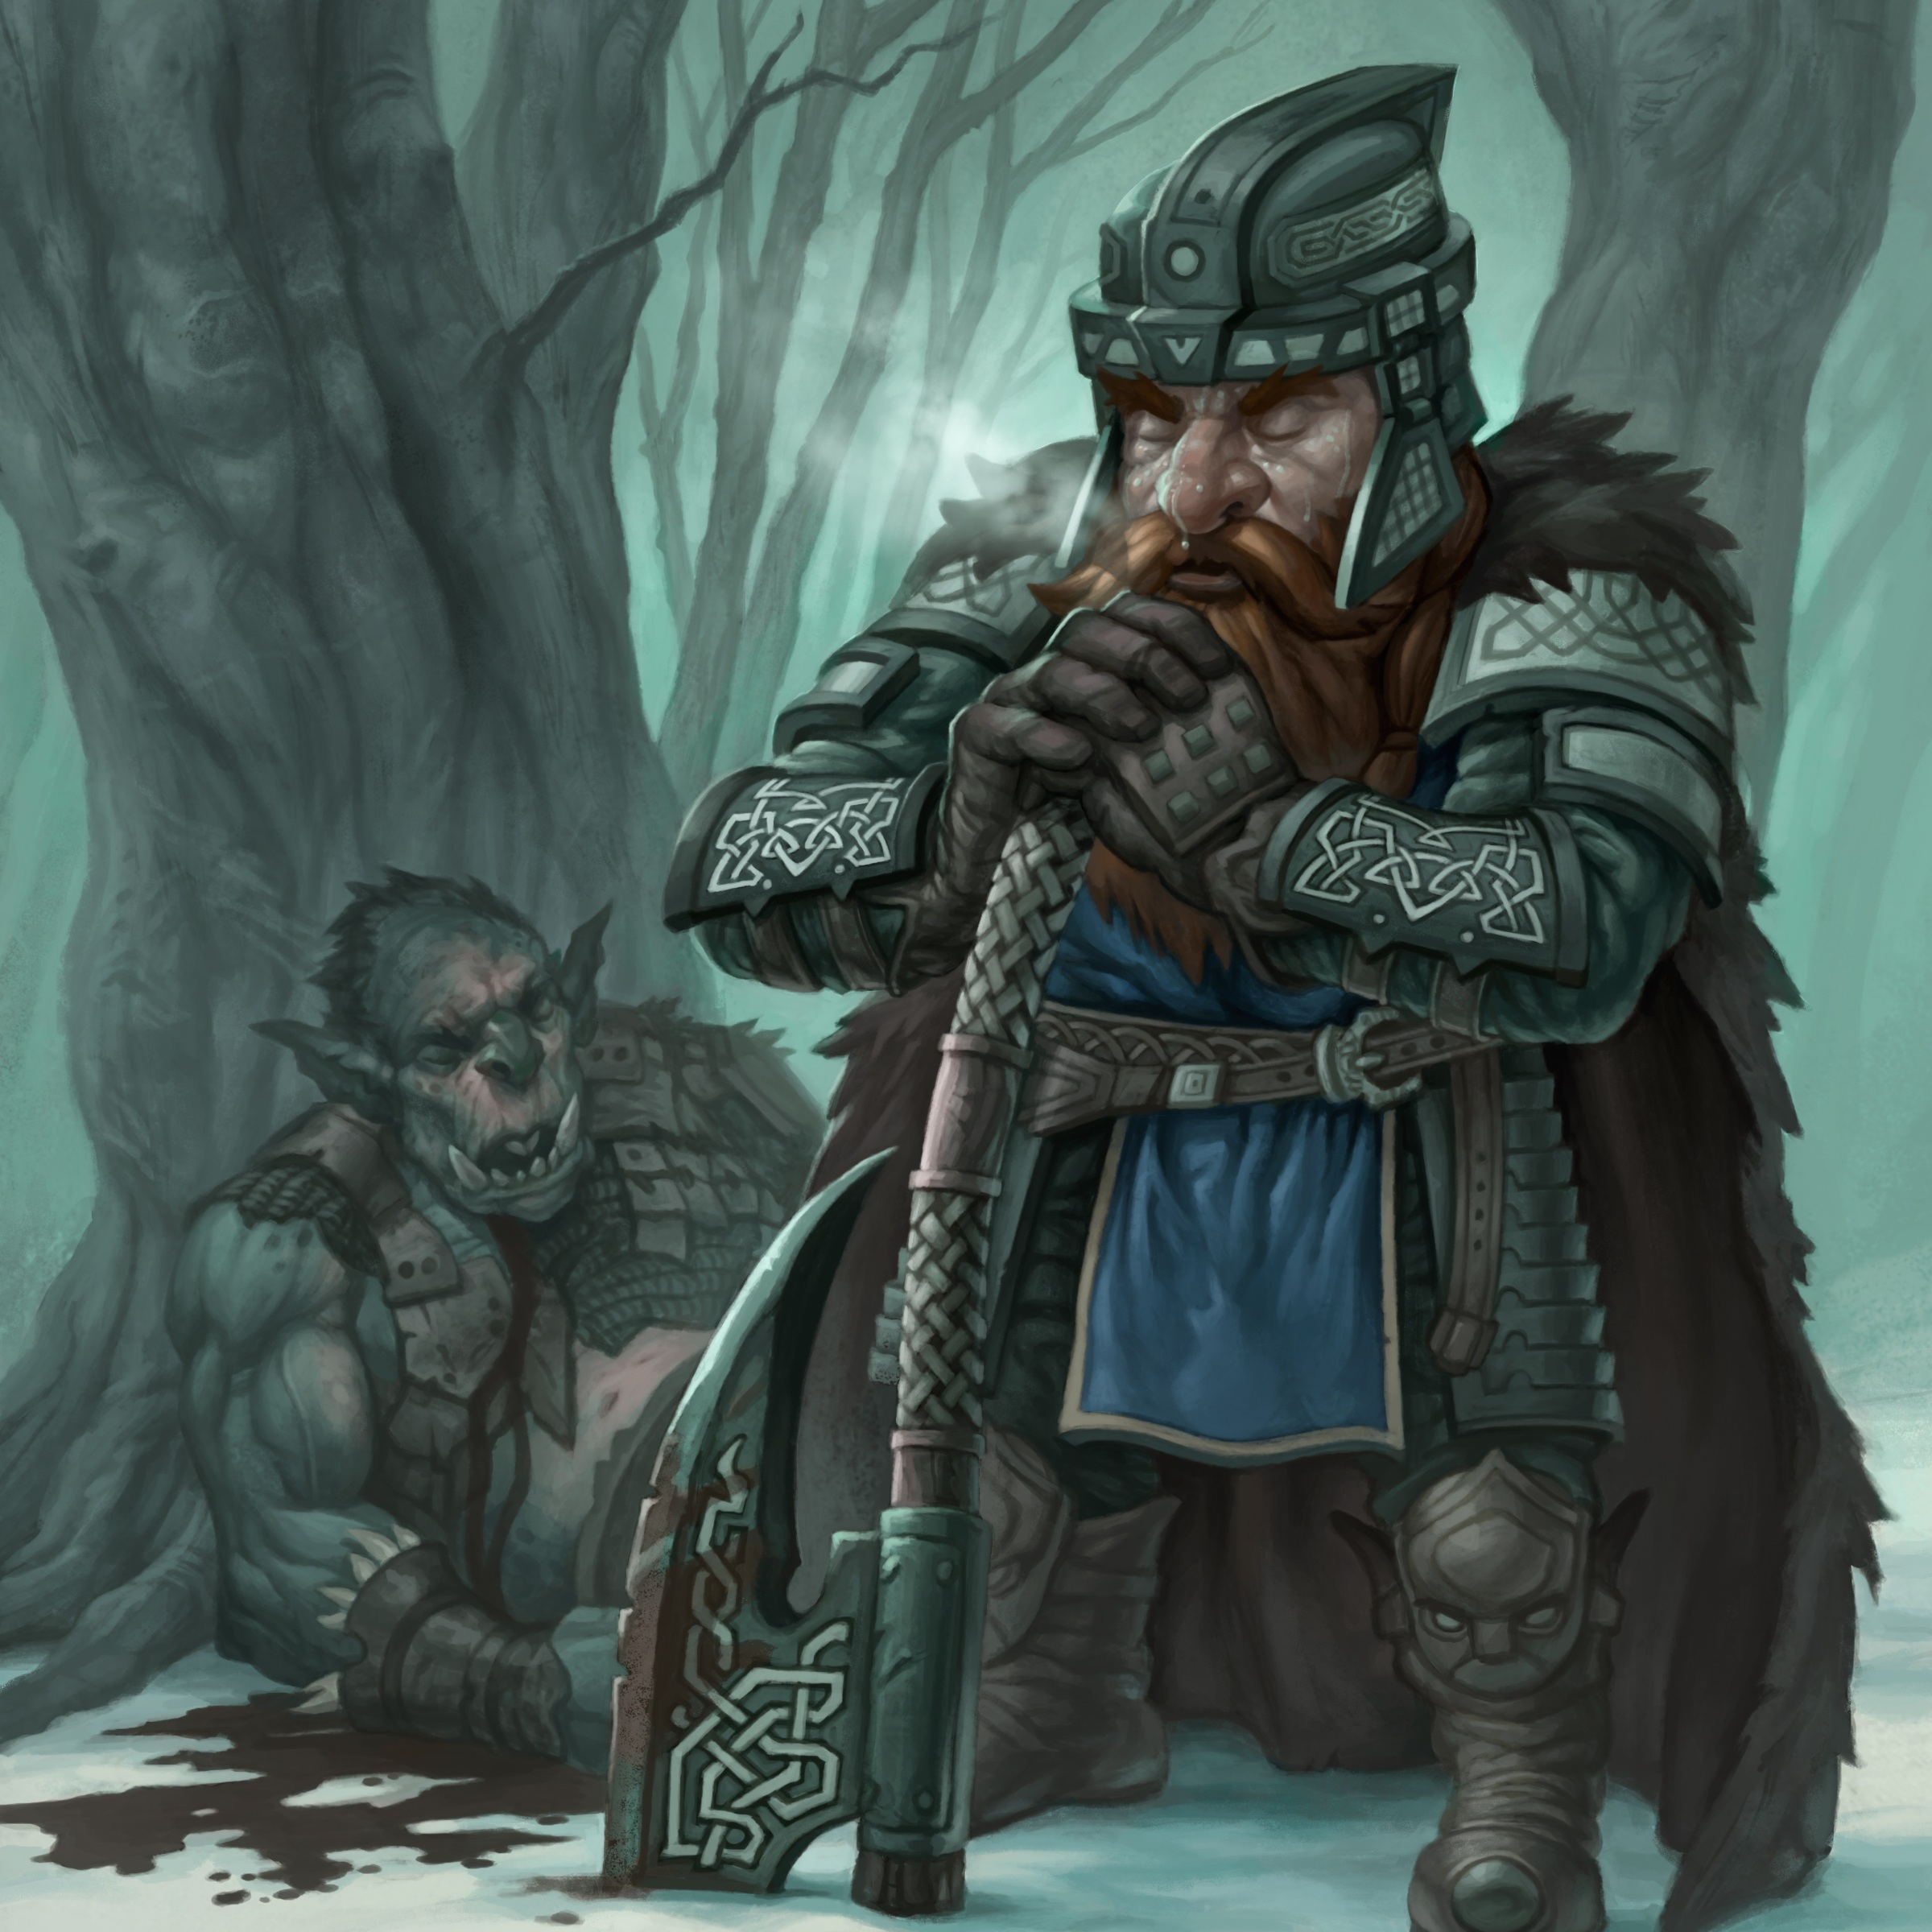 dwarf_snow_reflection.jpg